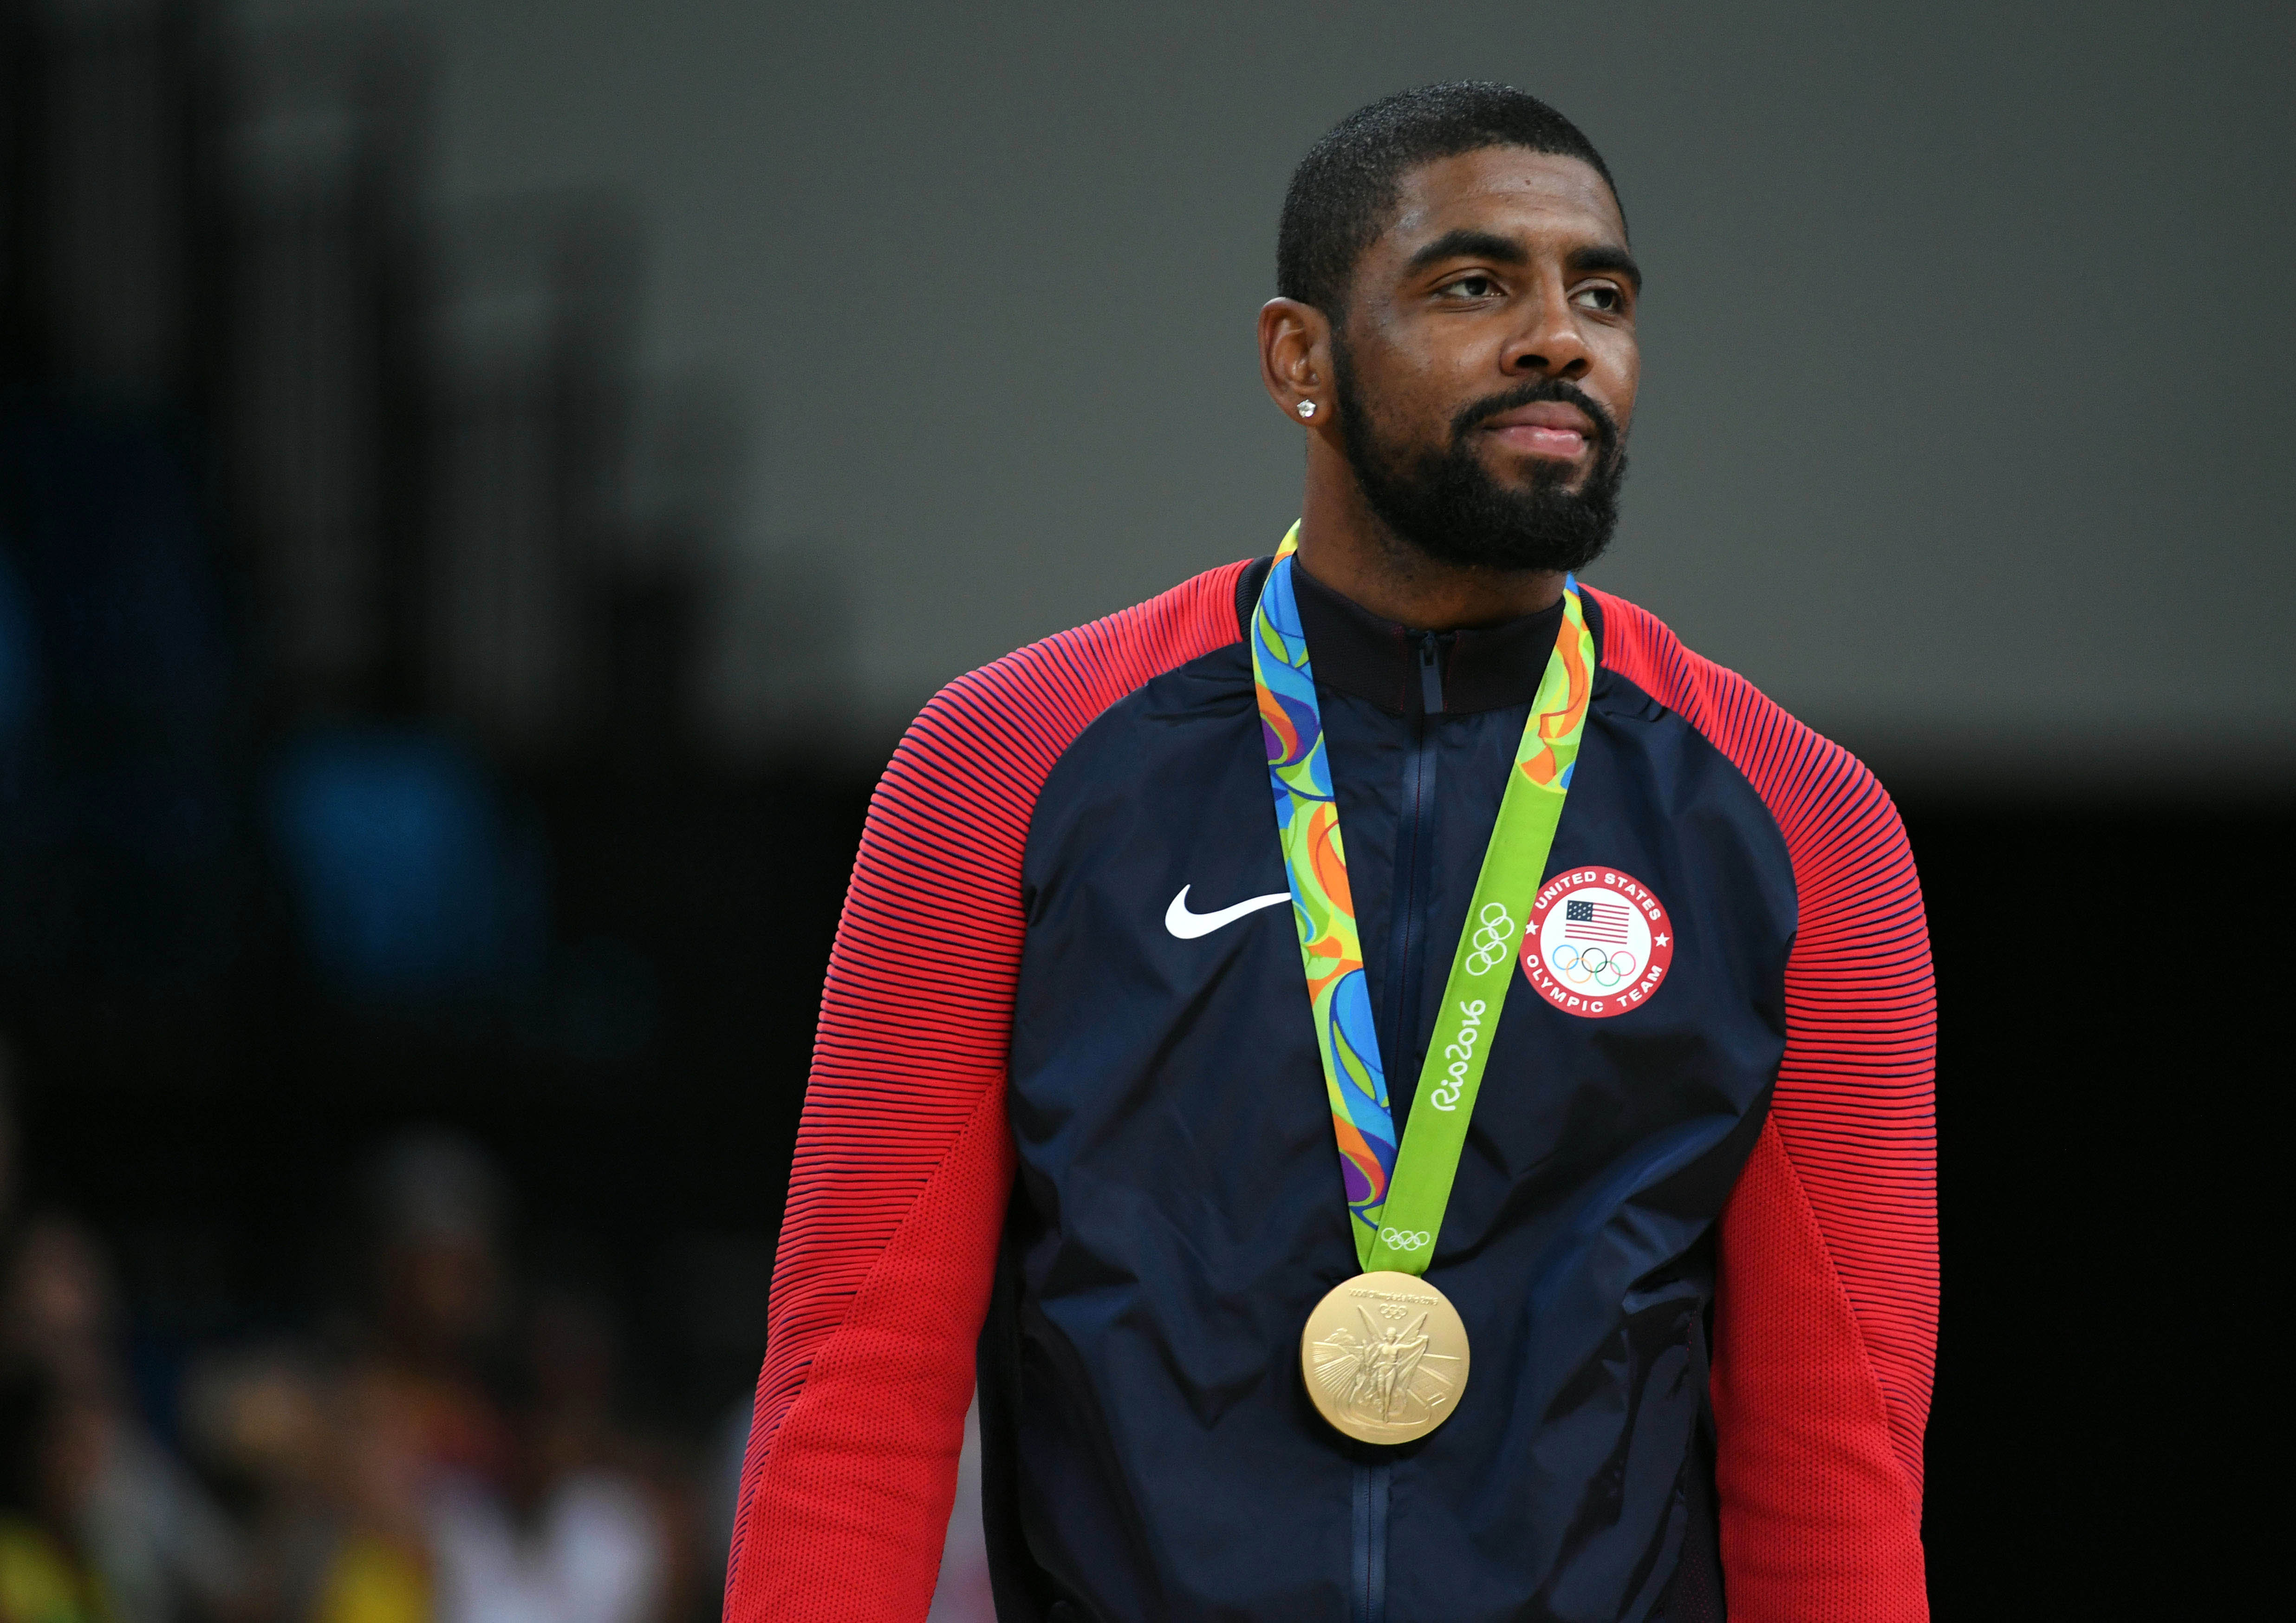 Kyrie Irving (10) helps USA win gold in Rio 2016 Summer Olympic Games. (Photo: RVR Photos, USA TODAY Sports)